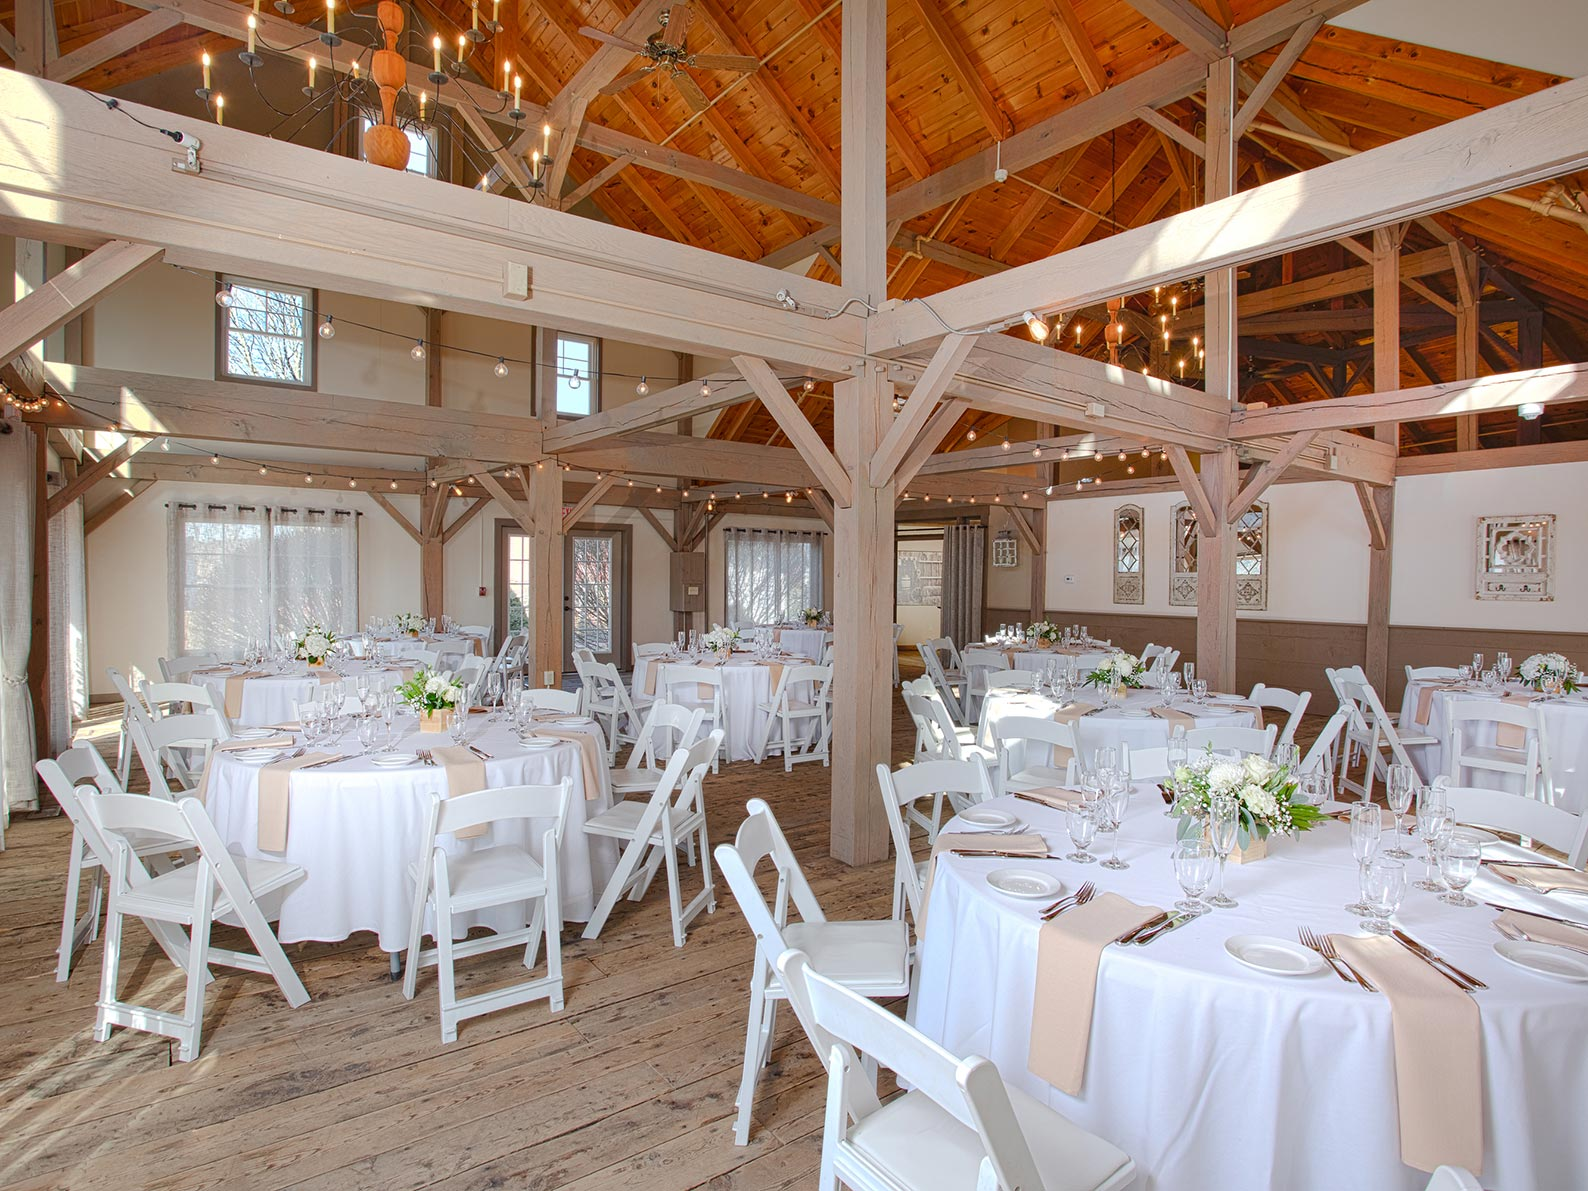 Alpheus Wight Room   The Barn at Wight Farm